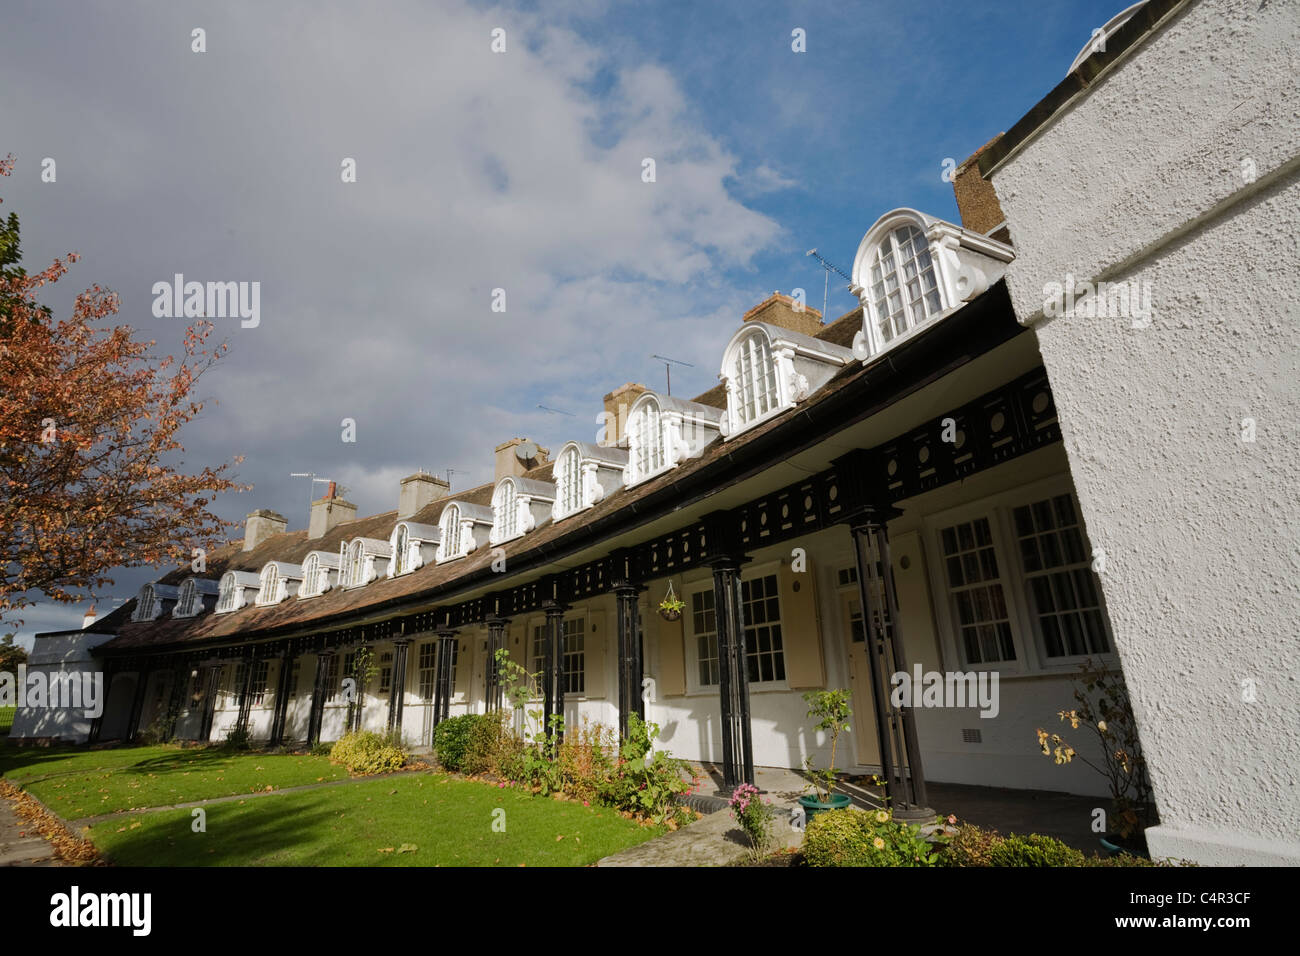 Cottages on Lower Road, Port Sunlight Village, Wirral, Cheshire, England - Stock Image